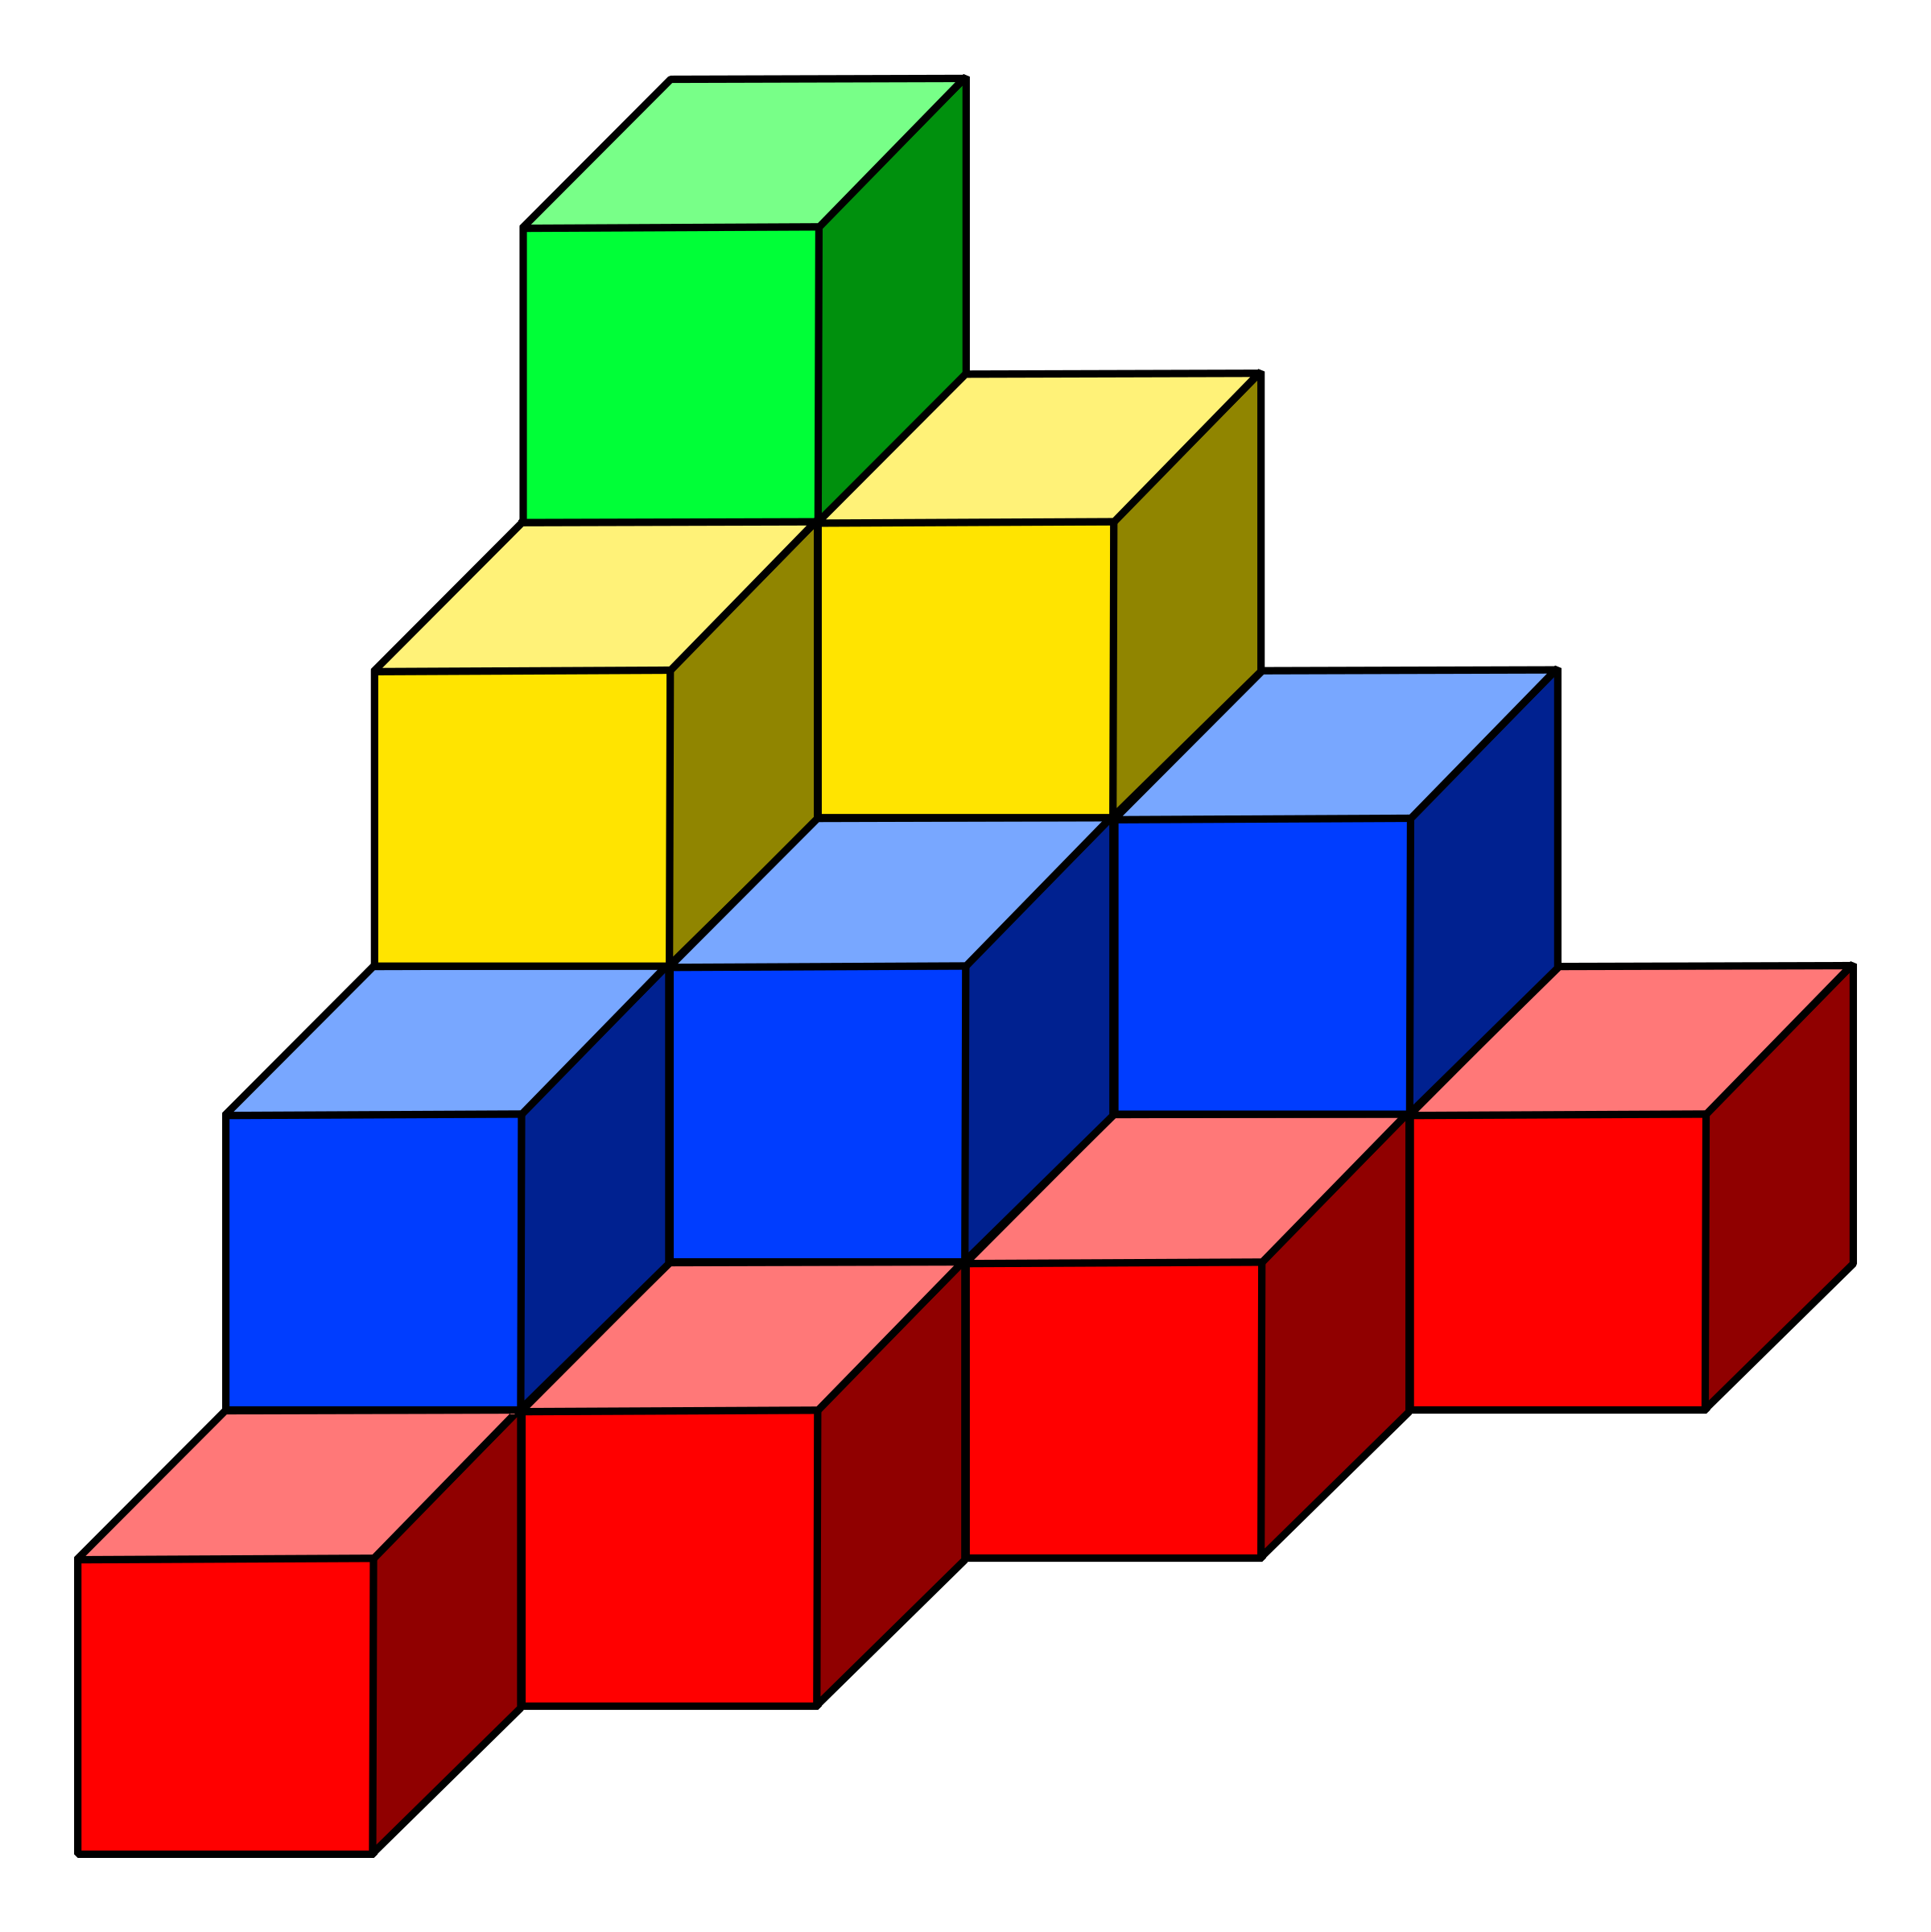 cube tower 01 by frankes